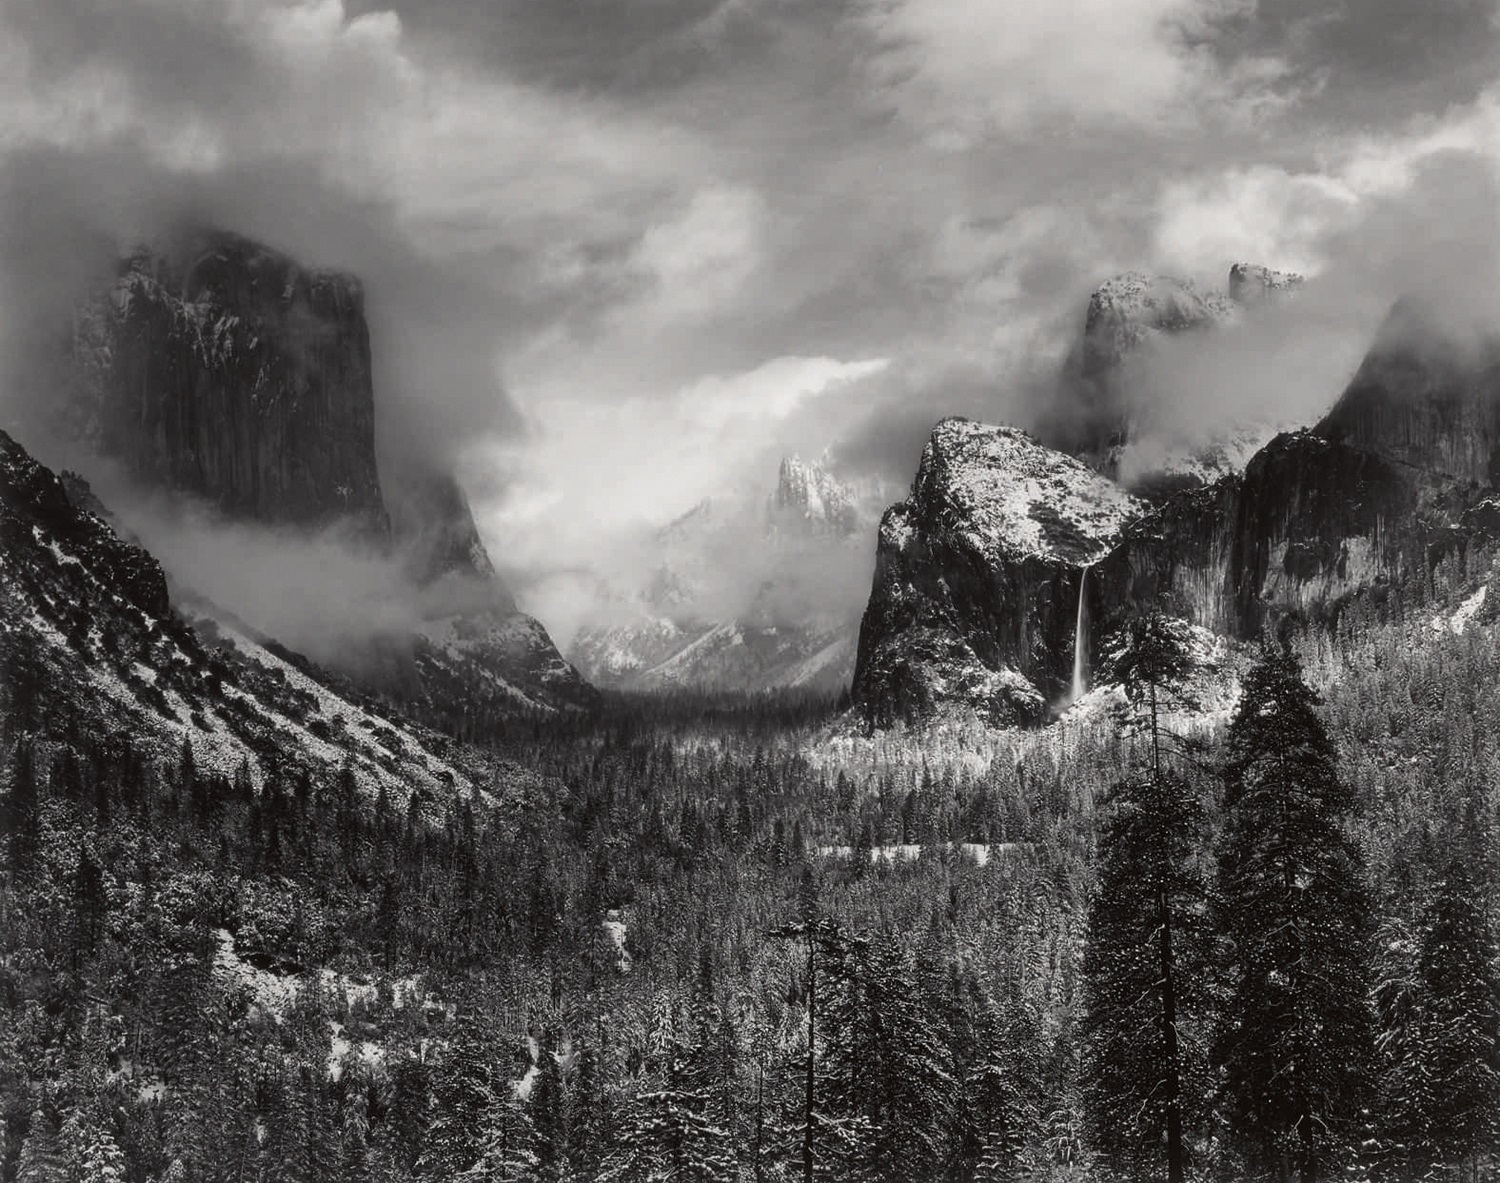 Sotheby's to Present Largest Private Collection of Ansel Adams Photographs